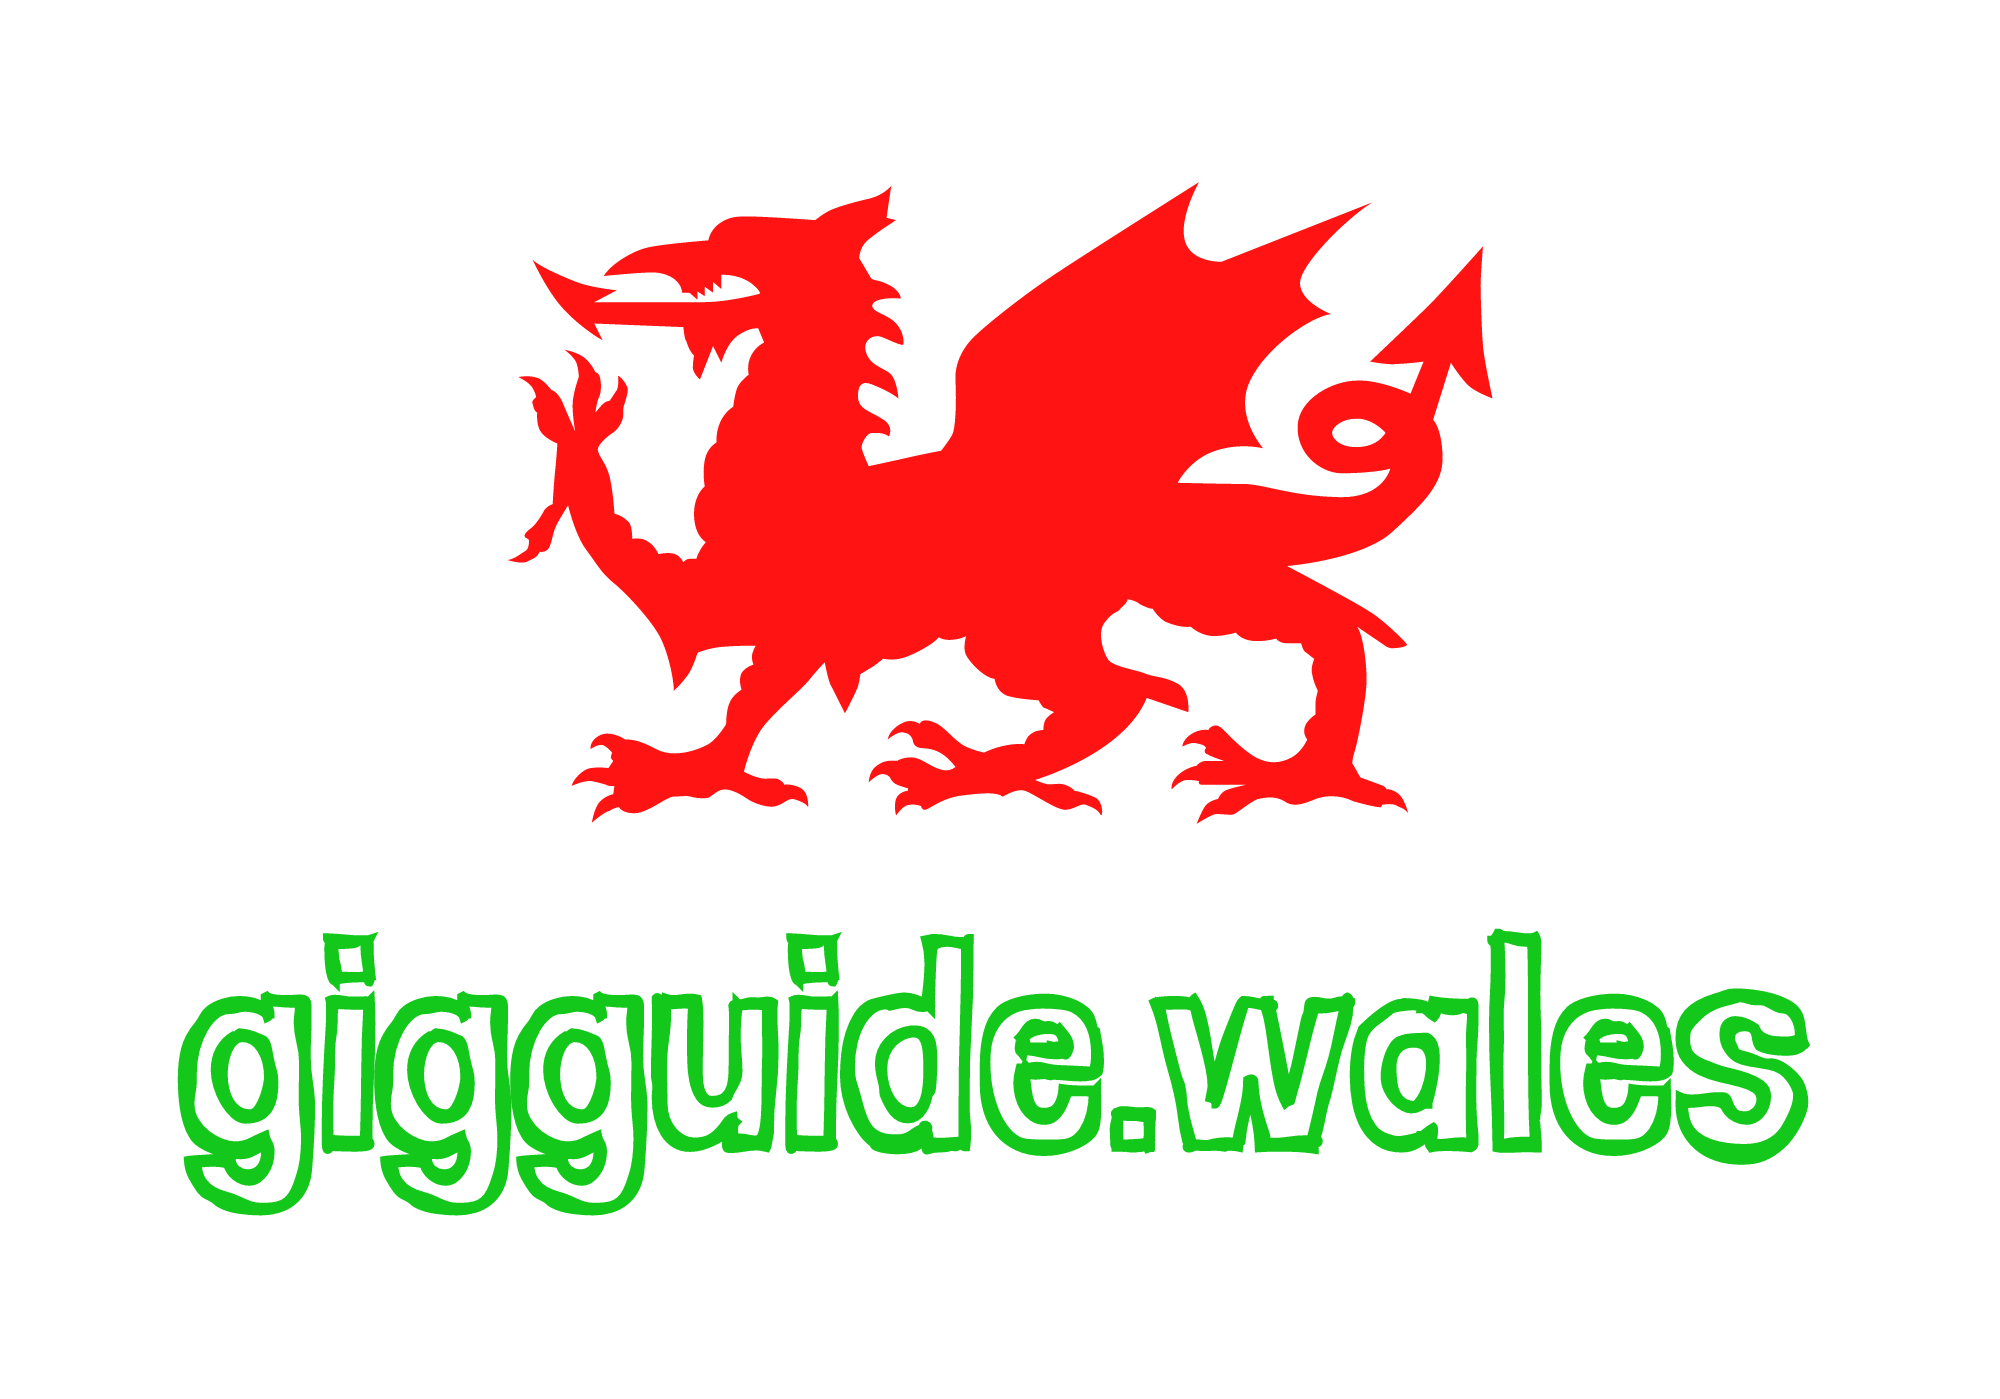 gig guide wales